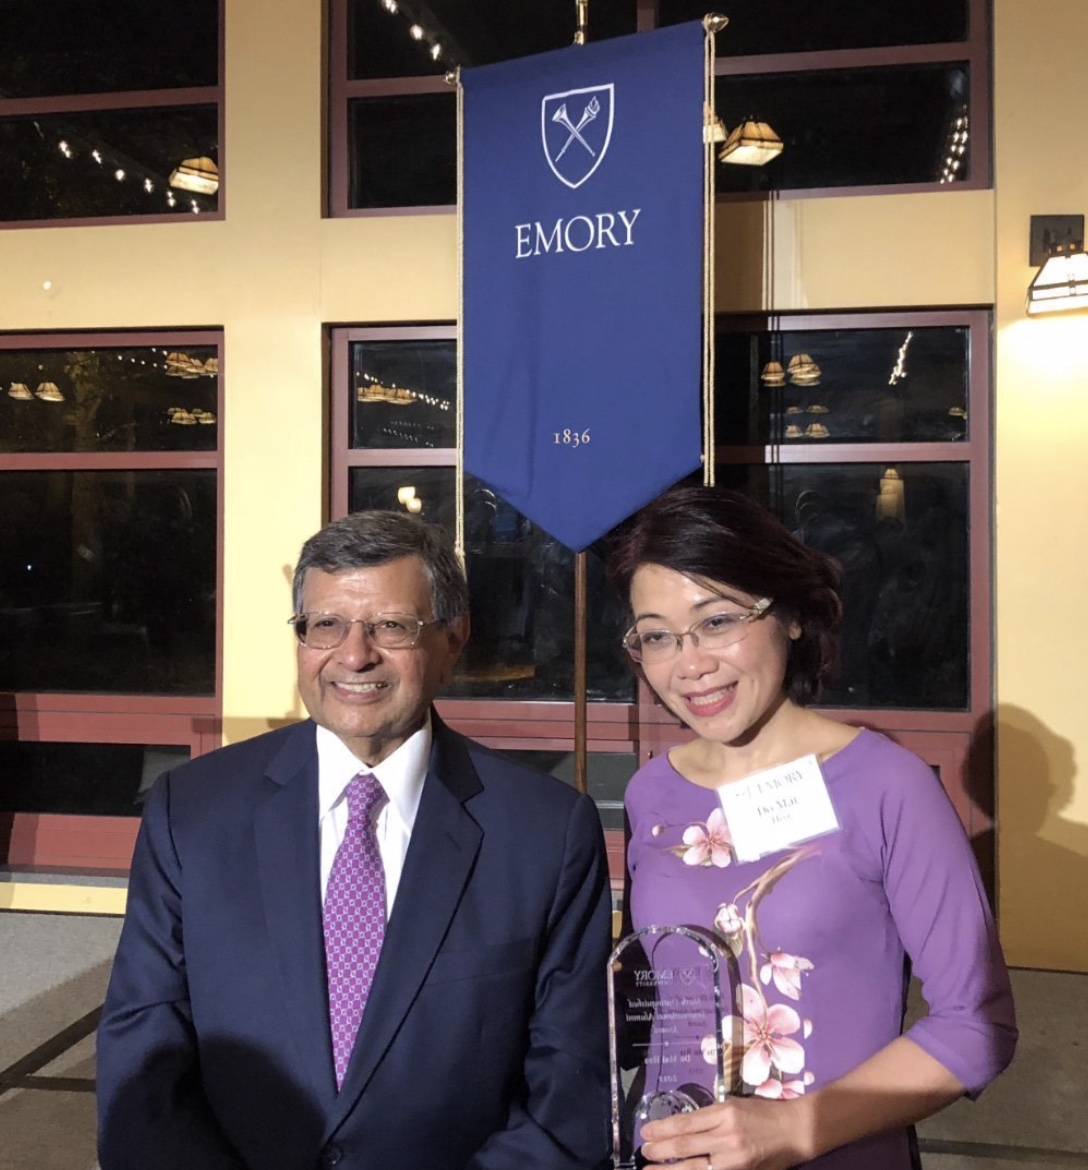 Emory alumna Dr. Do Mai Hoa who received the Sheth International Alumni Award